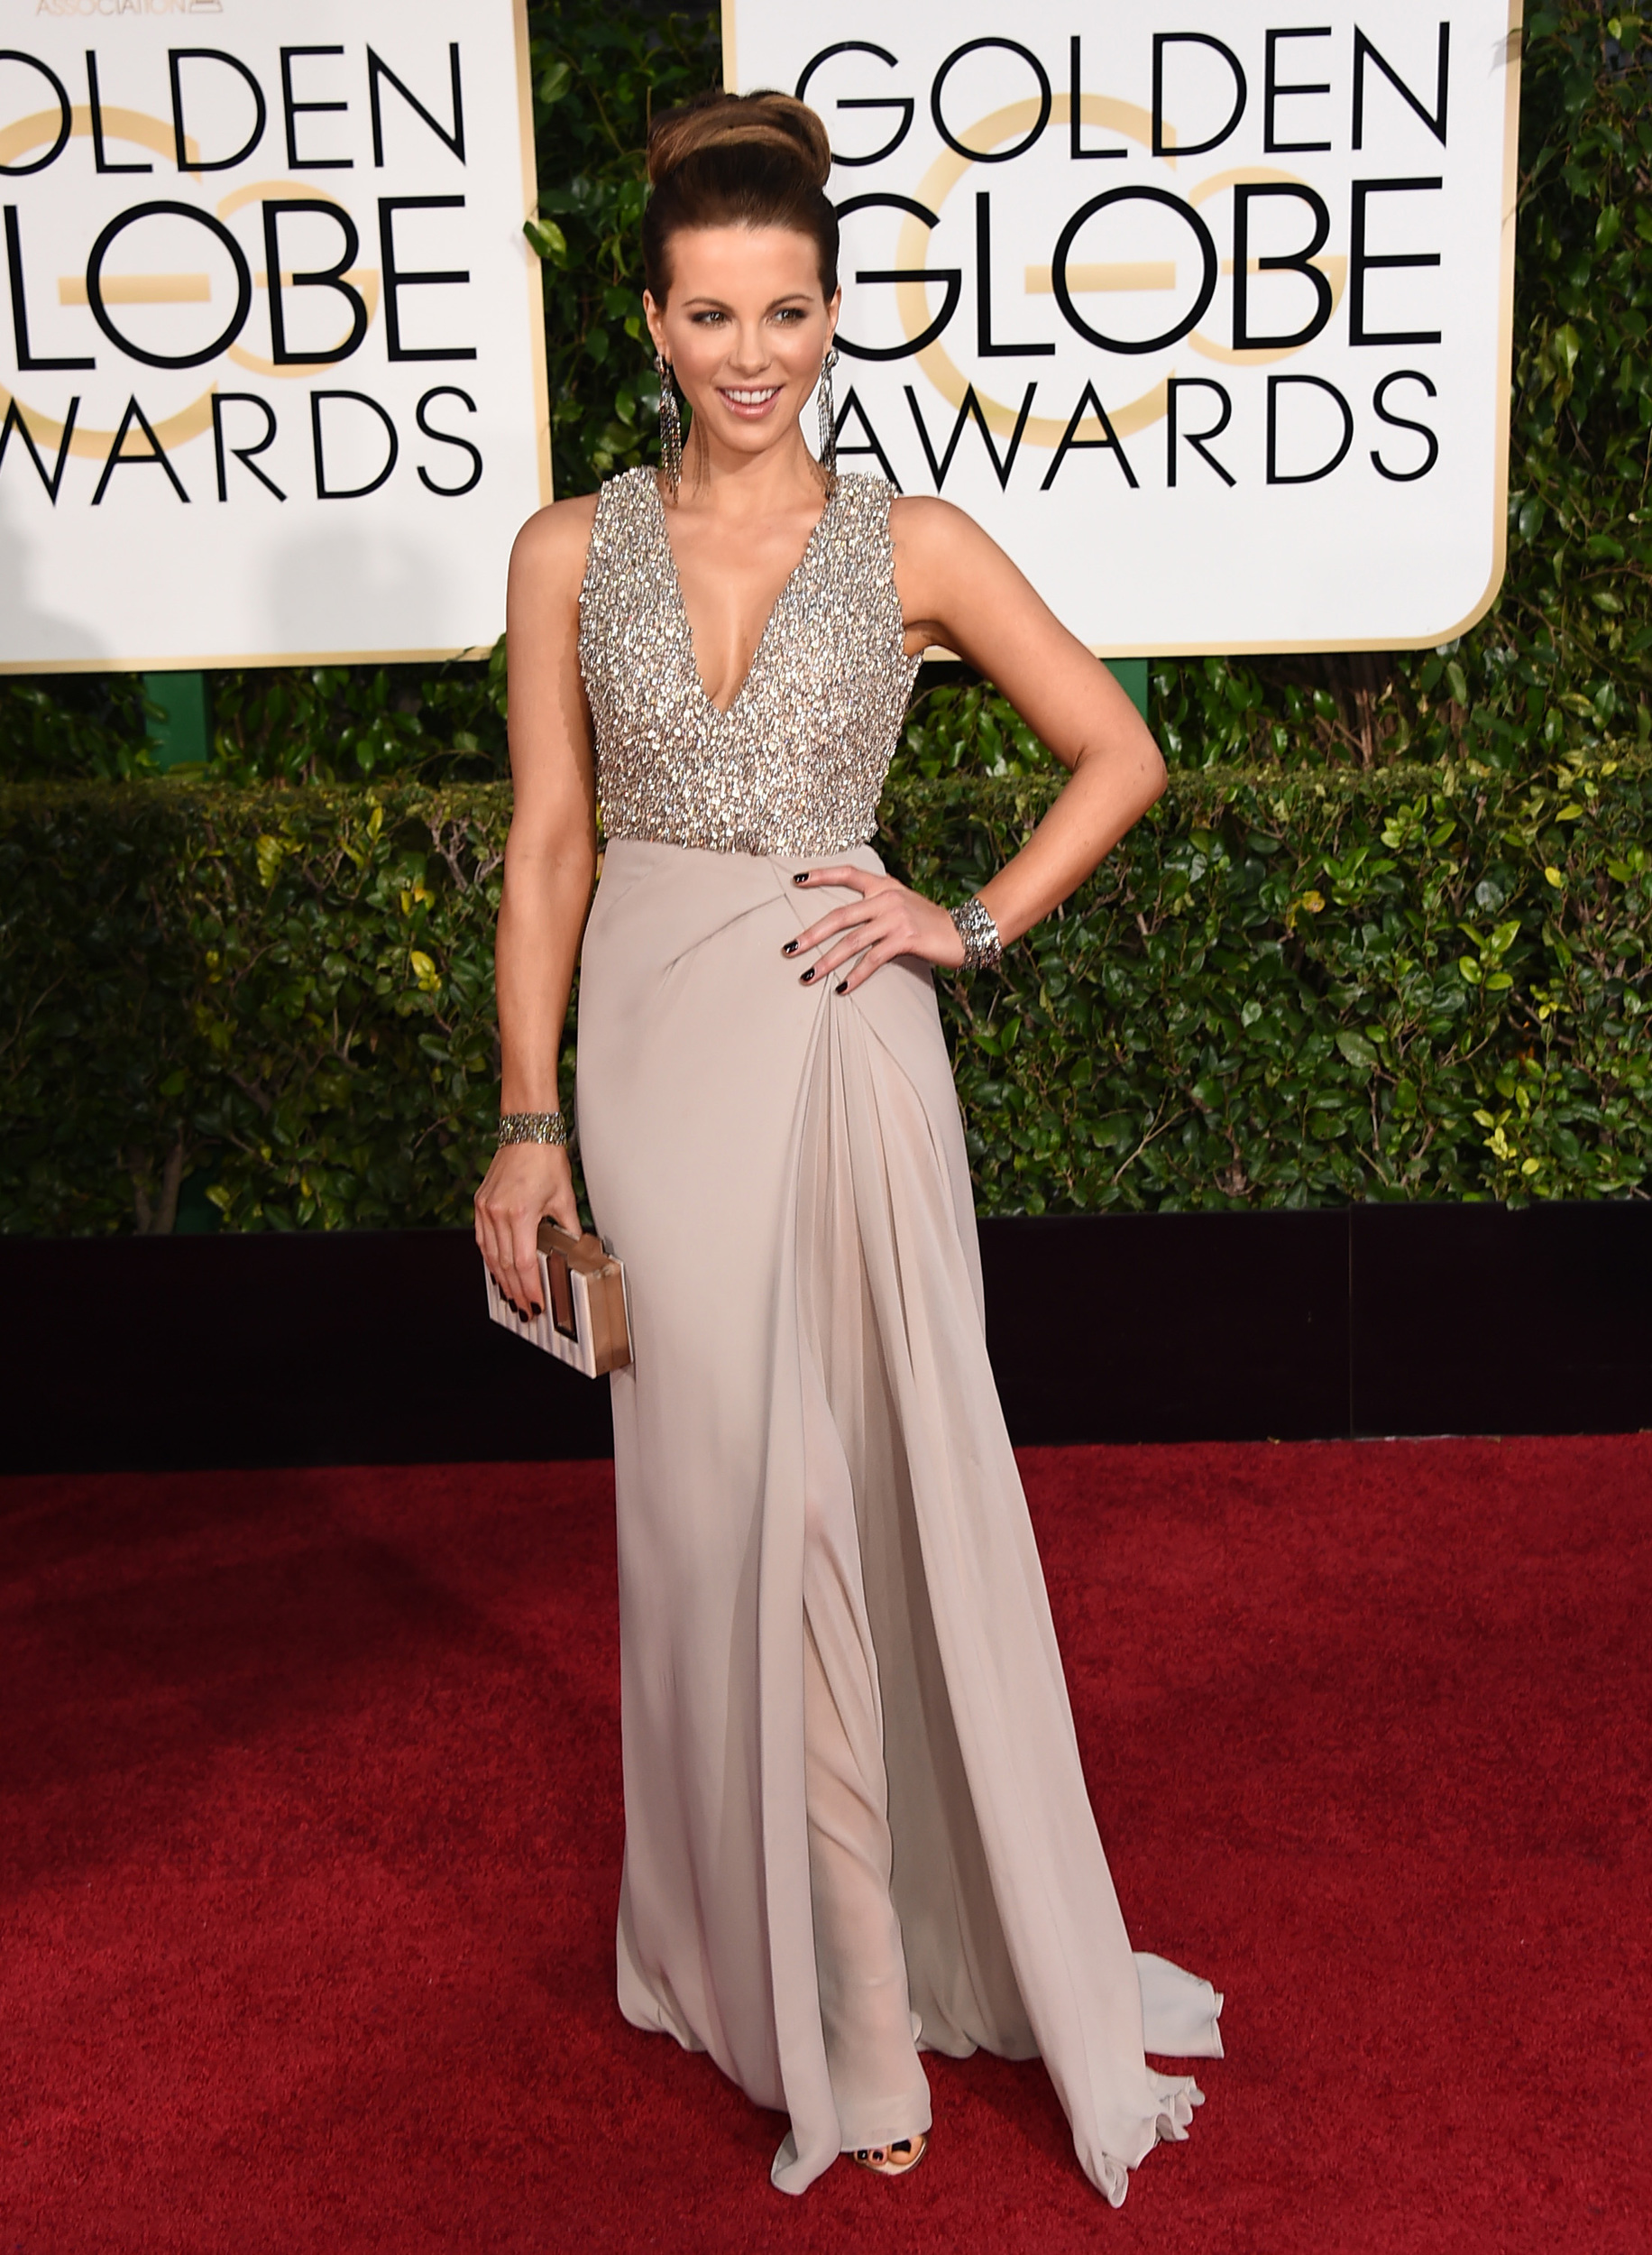 Golden globes 2015 red carpet arrivals - Golden globes red carpet ...